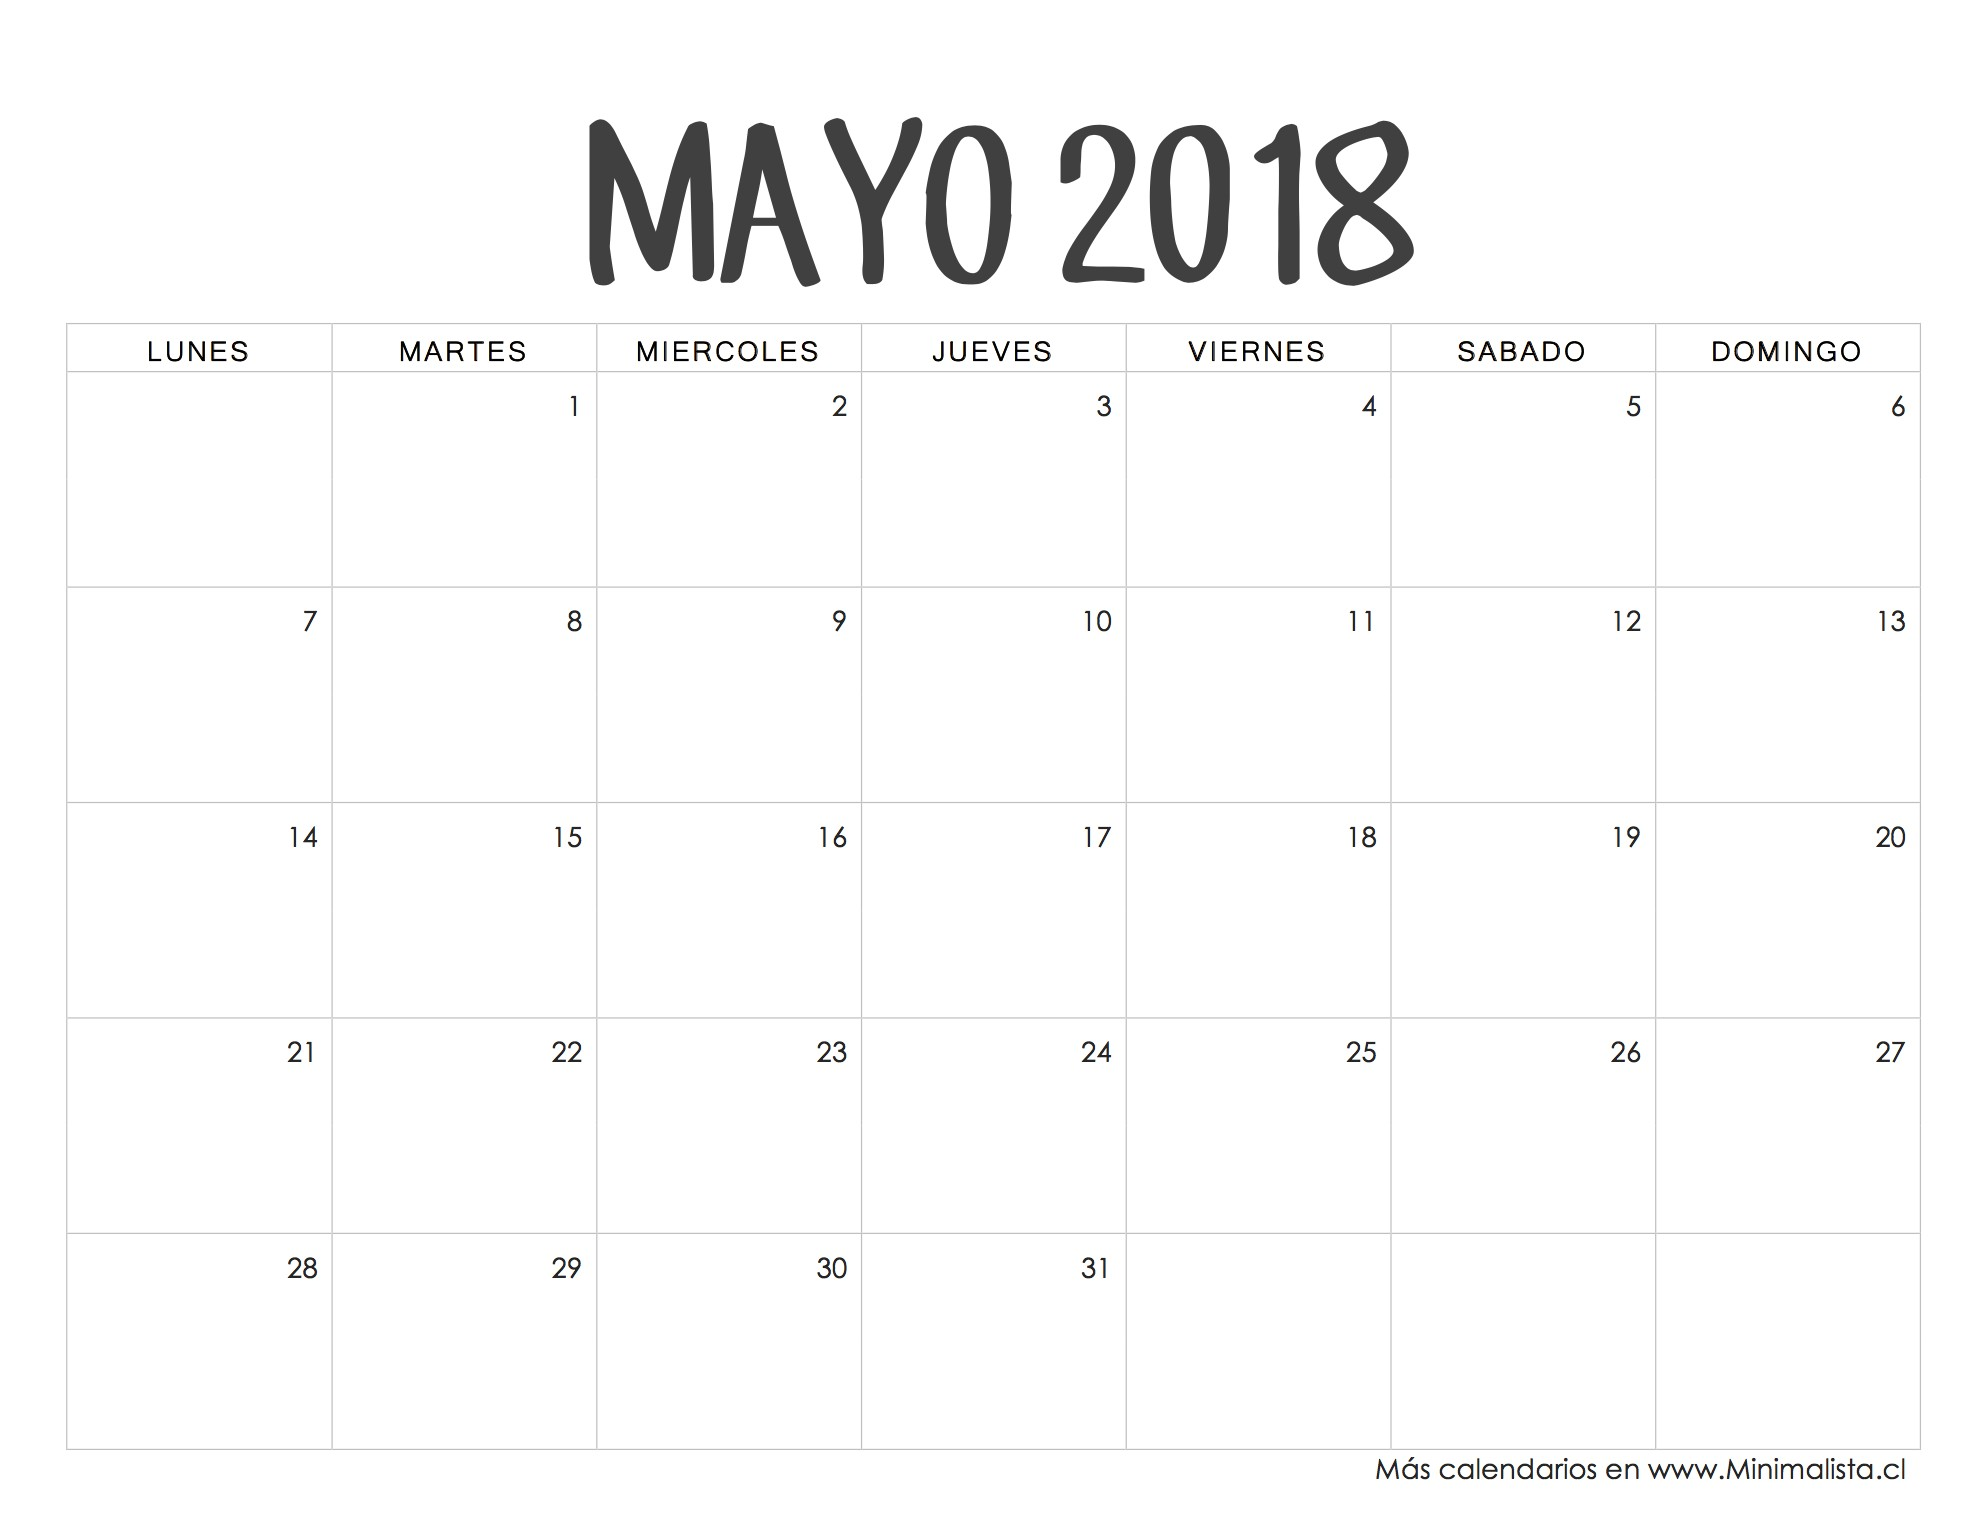 Calendario Lunar Febrero 2019 Mexico Recientes Calendario Mayo 2018 Calendarios2018 Pinterest Of Calendario Lunar Febrero 2019 Mexico Recientes Regional Outlook